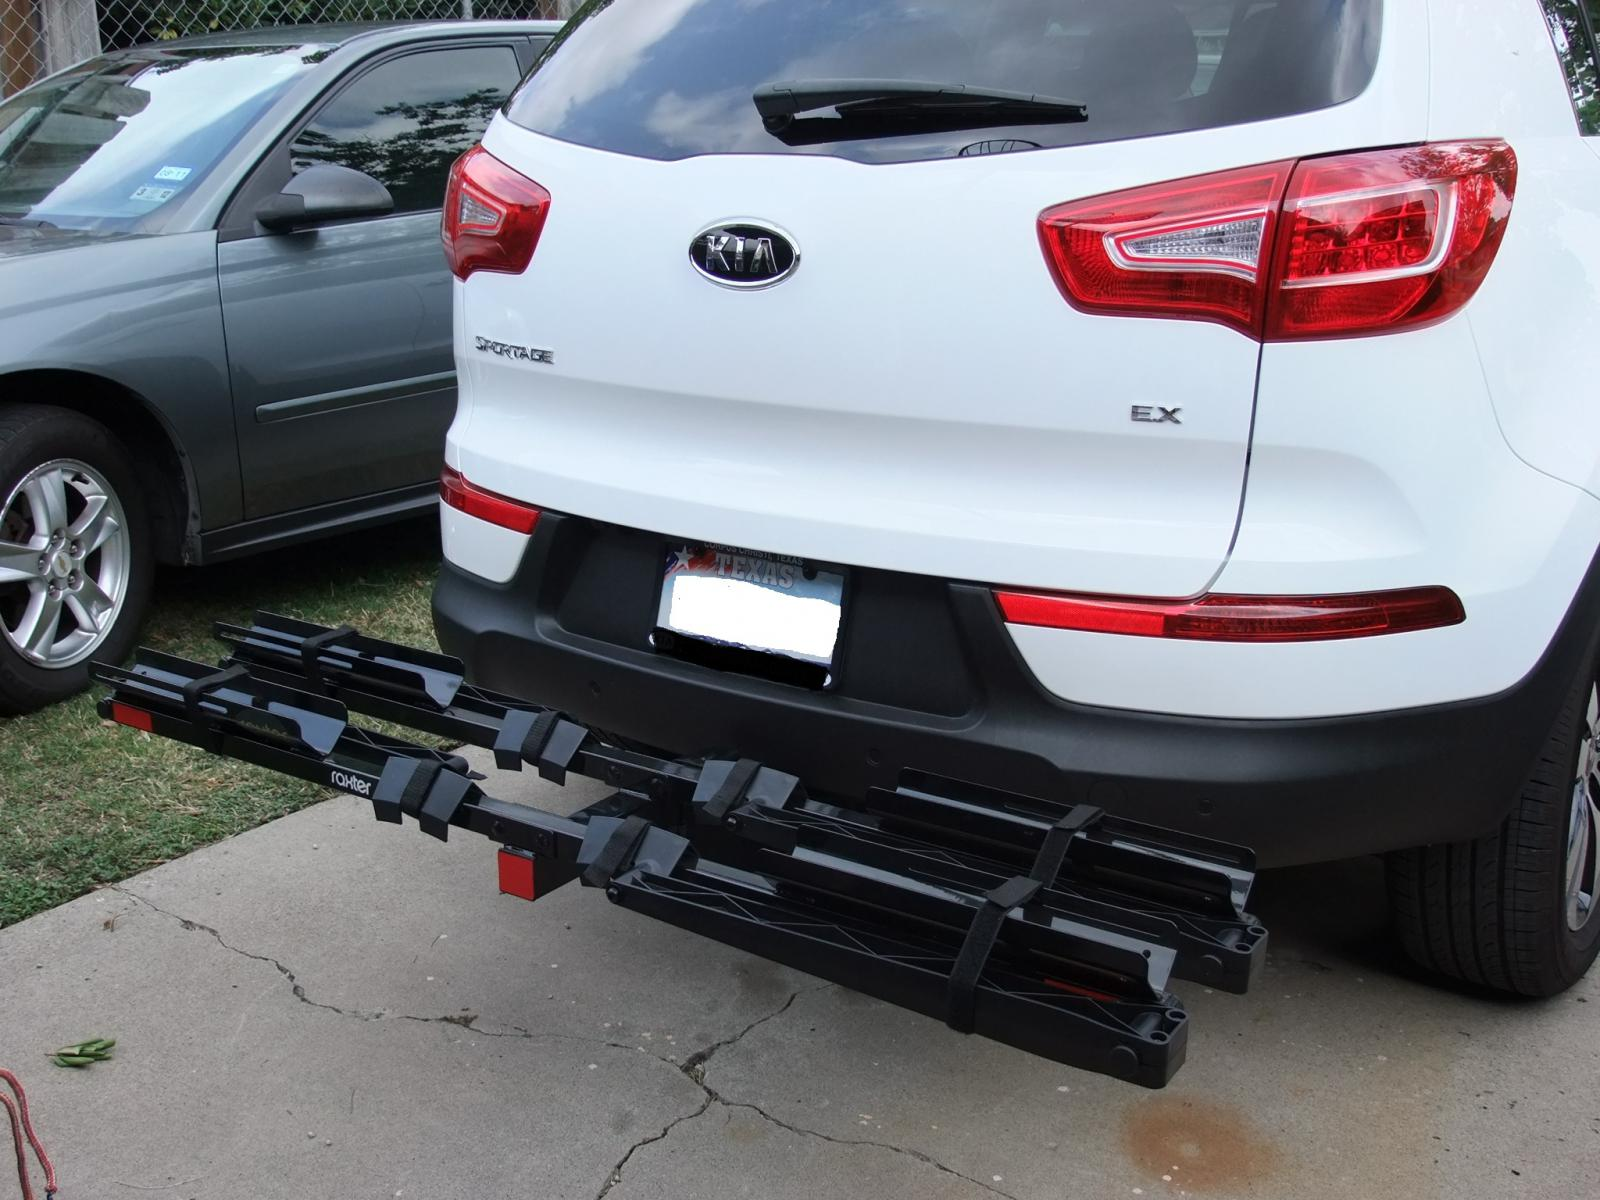 Install Trailer Hitch Kia Sportage 2016 Sorento Hitches Wiring On Soul Tow Location Red With Bike Rack Page 2 Forum